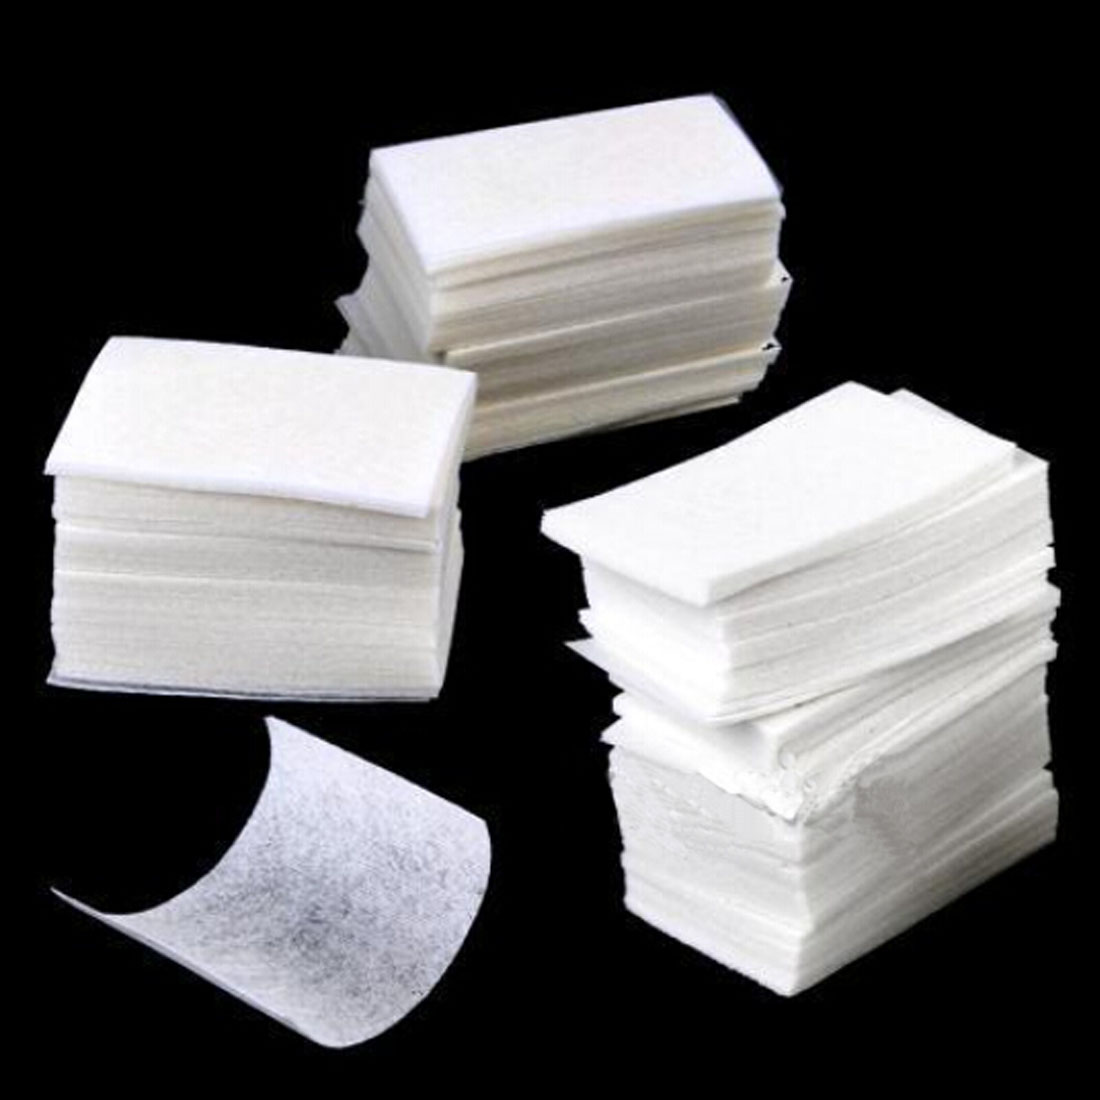 400pcs/set Nail Art wipe Manicure Polish gel nail Wipes Cotton High Quality Lint Cotton Pads Paper Acrylic Gel Tips жидкая помада absolute new york velvet lippie 17 цвет avl17 lagoon variant hex name 1c8479